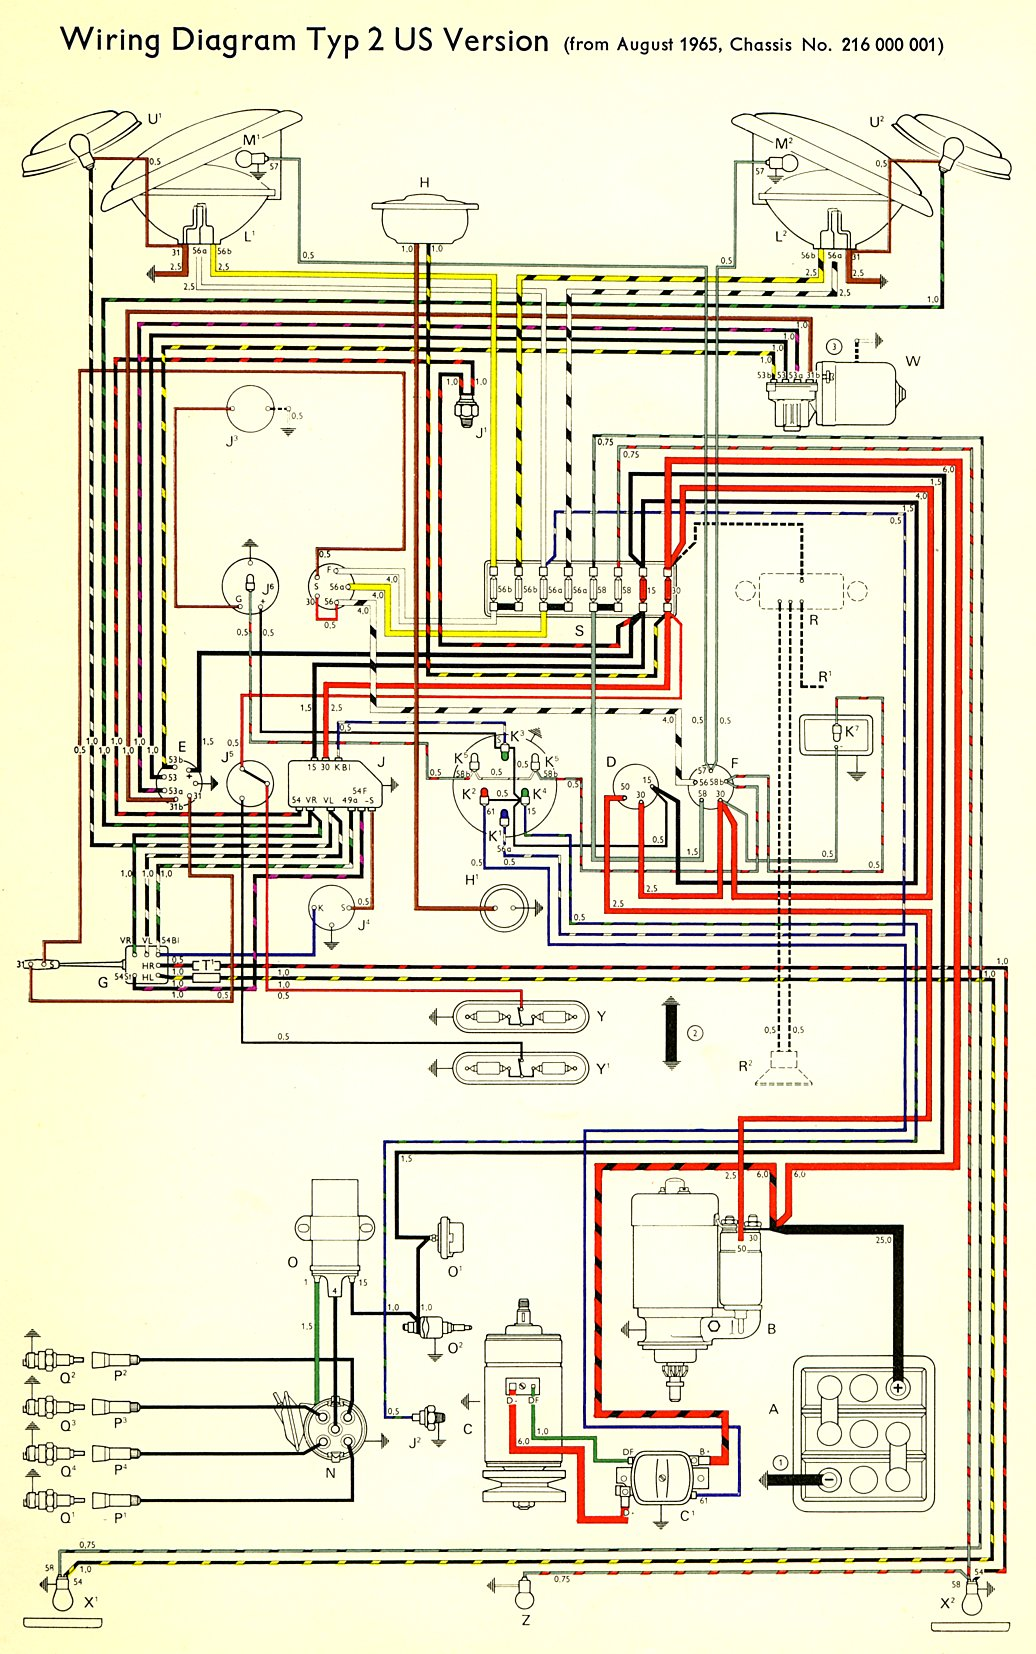 Usa Wire Diagram Schematics Data 1982 Chevy Truck Courtesy Light Wiring 1966 Bus Thegoldenbug Com Automotive Electrical Diagrams